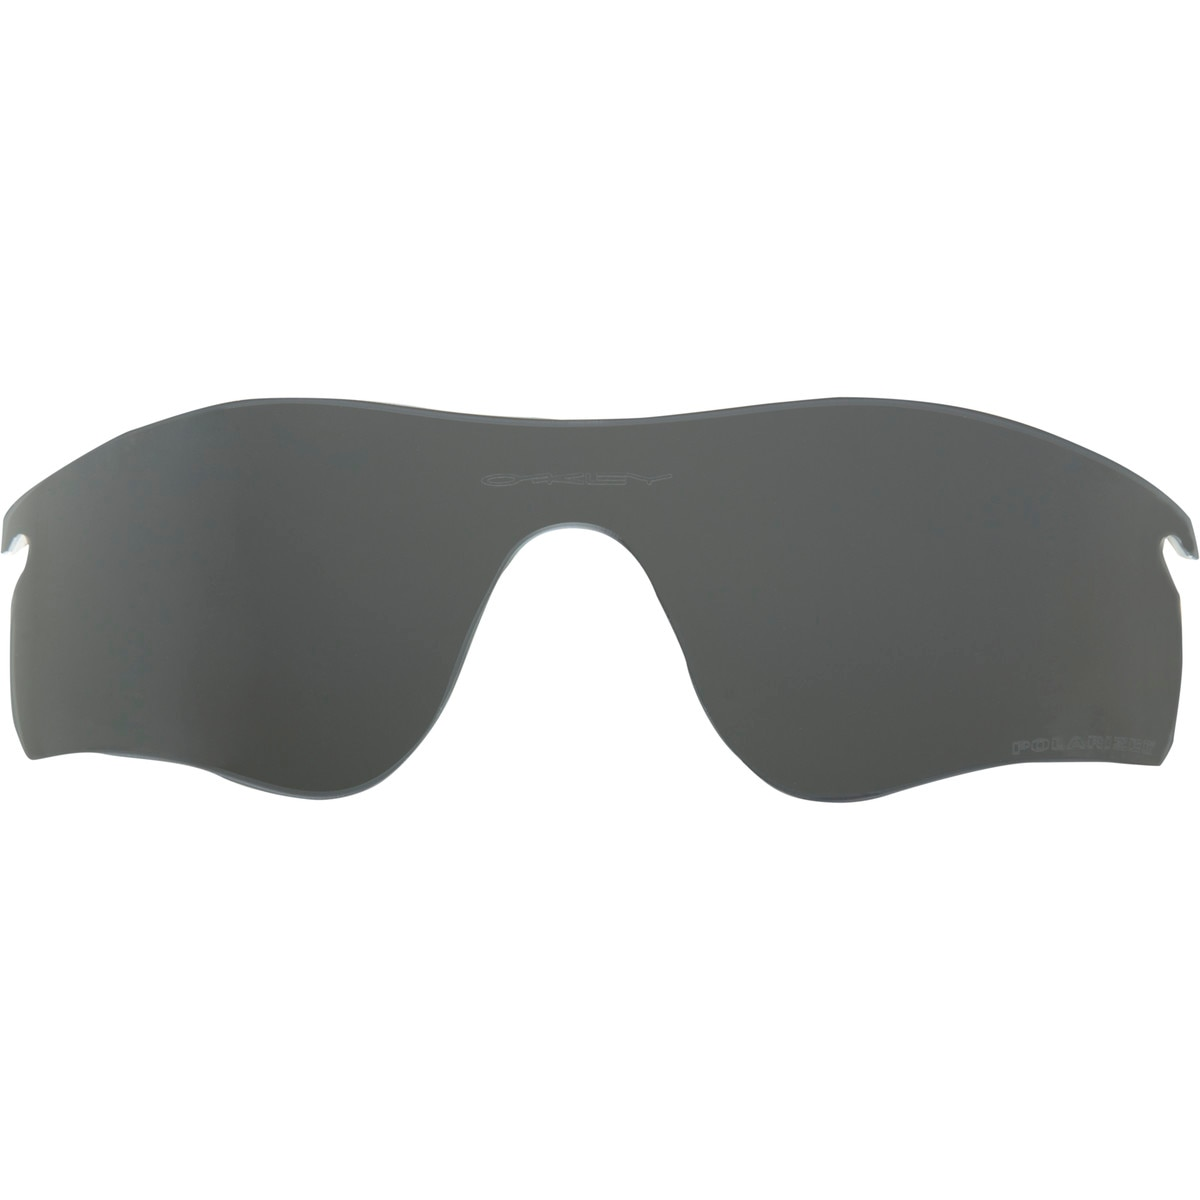 oakley cycling sunglasses prescription como  oakley cycling sunglasses interchangeable lenses